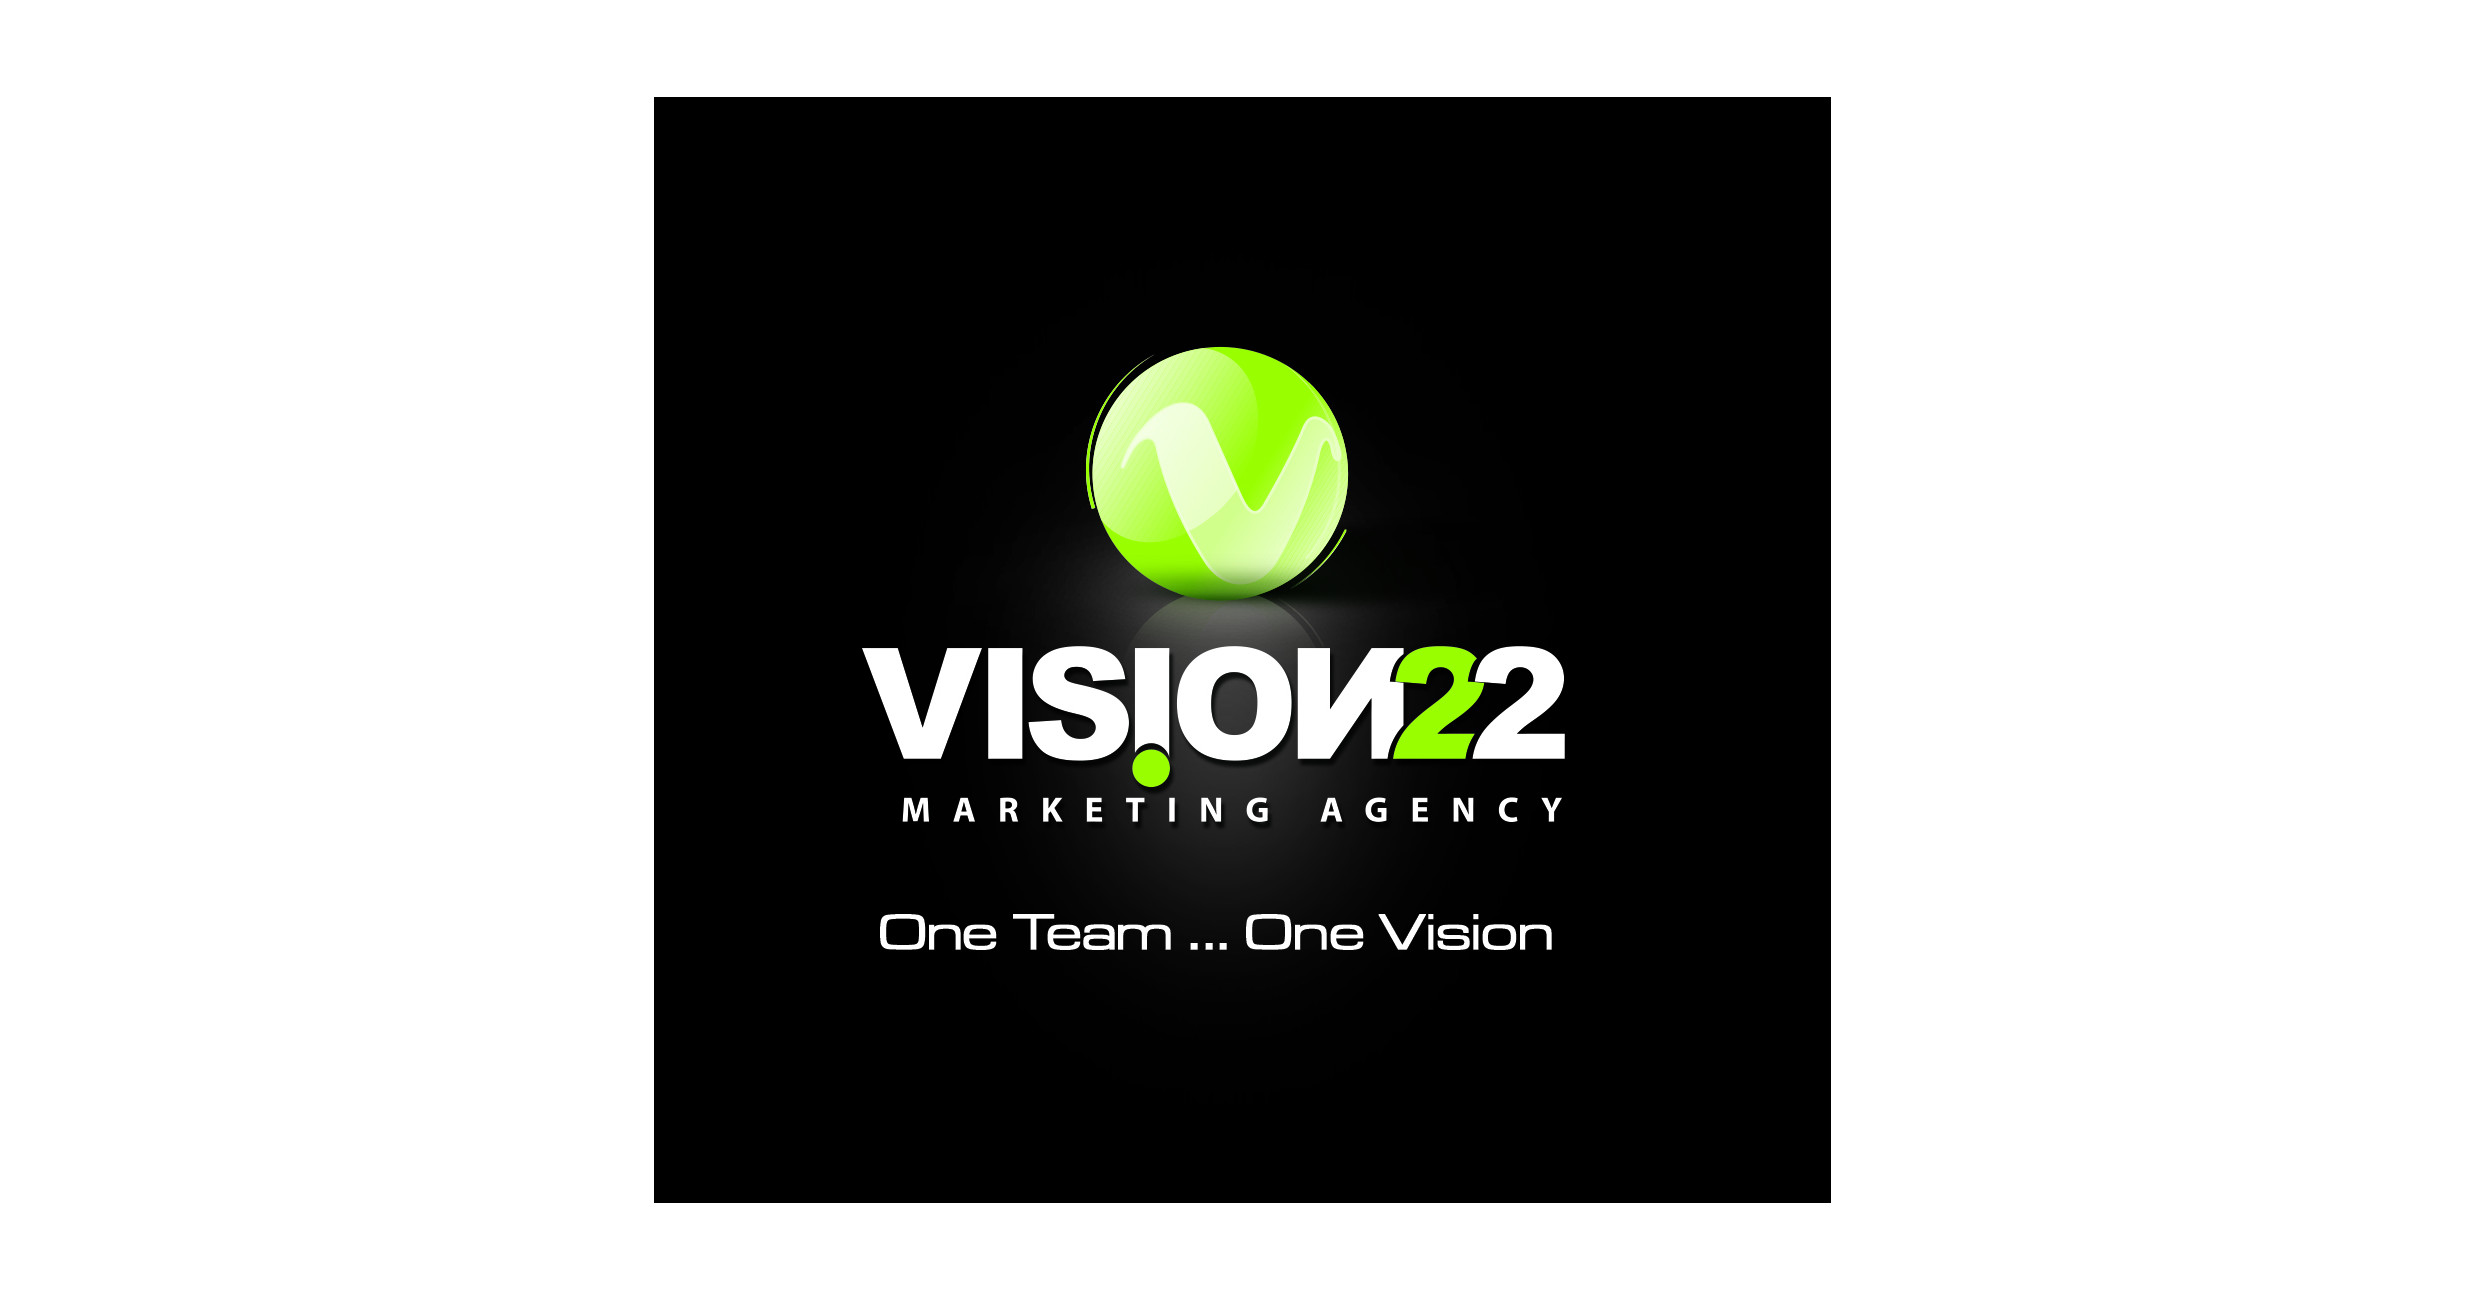 صورة Job: Social Media Moderator at Vision 22 Advertising Agency in Cairo, Egypt